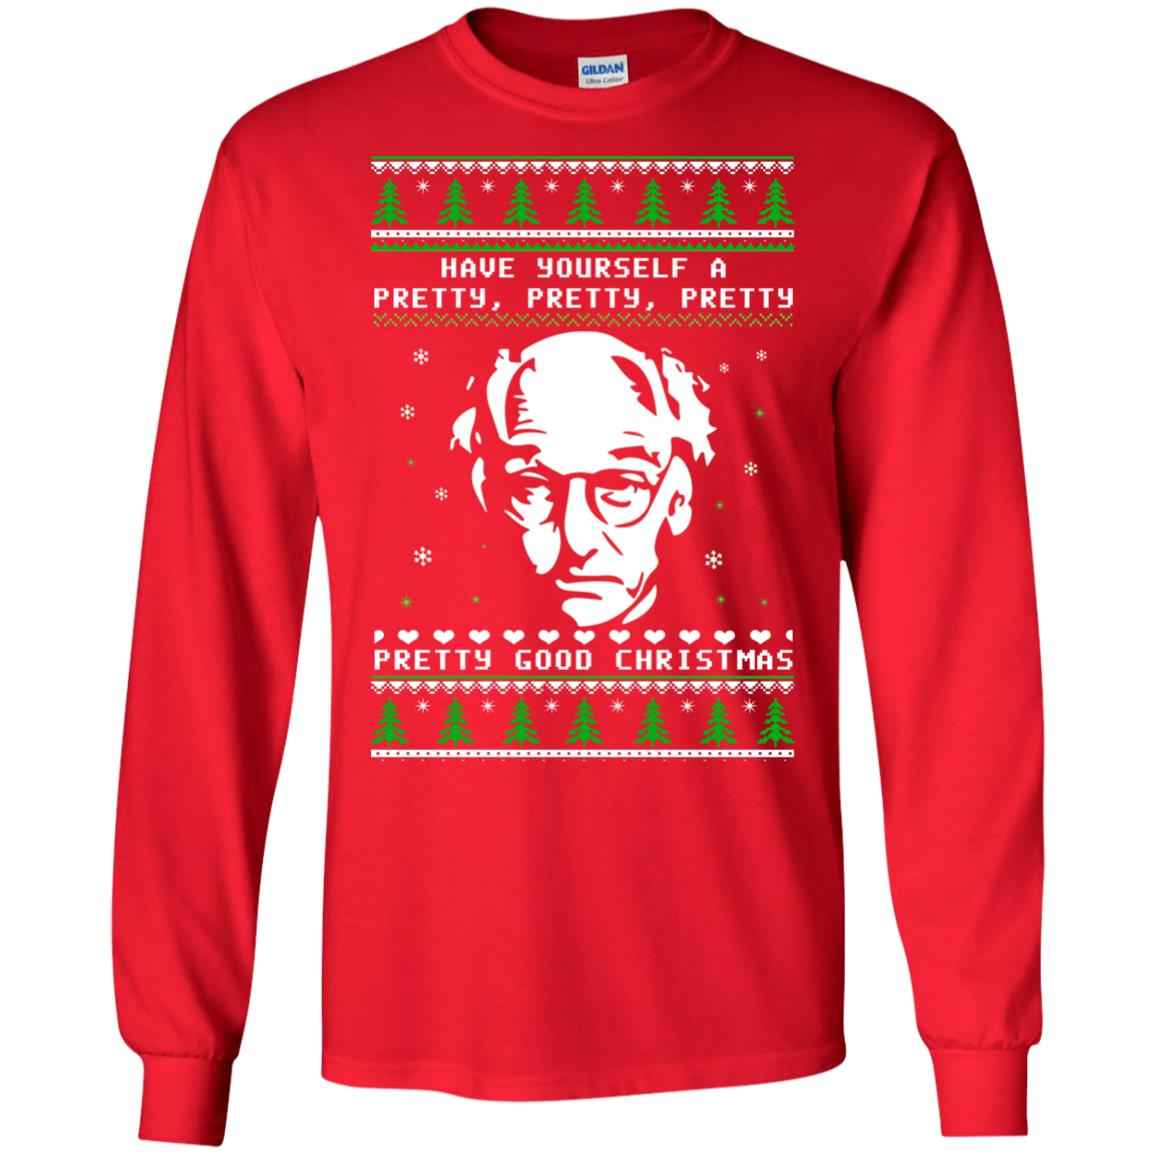 Larry david have yourself a pretty good christmas ugly sweater t larry david have yourself a pretty good christmas ugly sweater t shirt image solutioingenieria Images